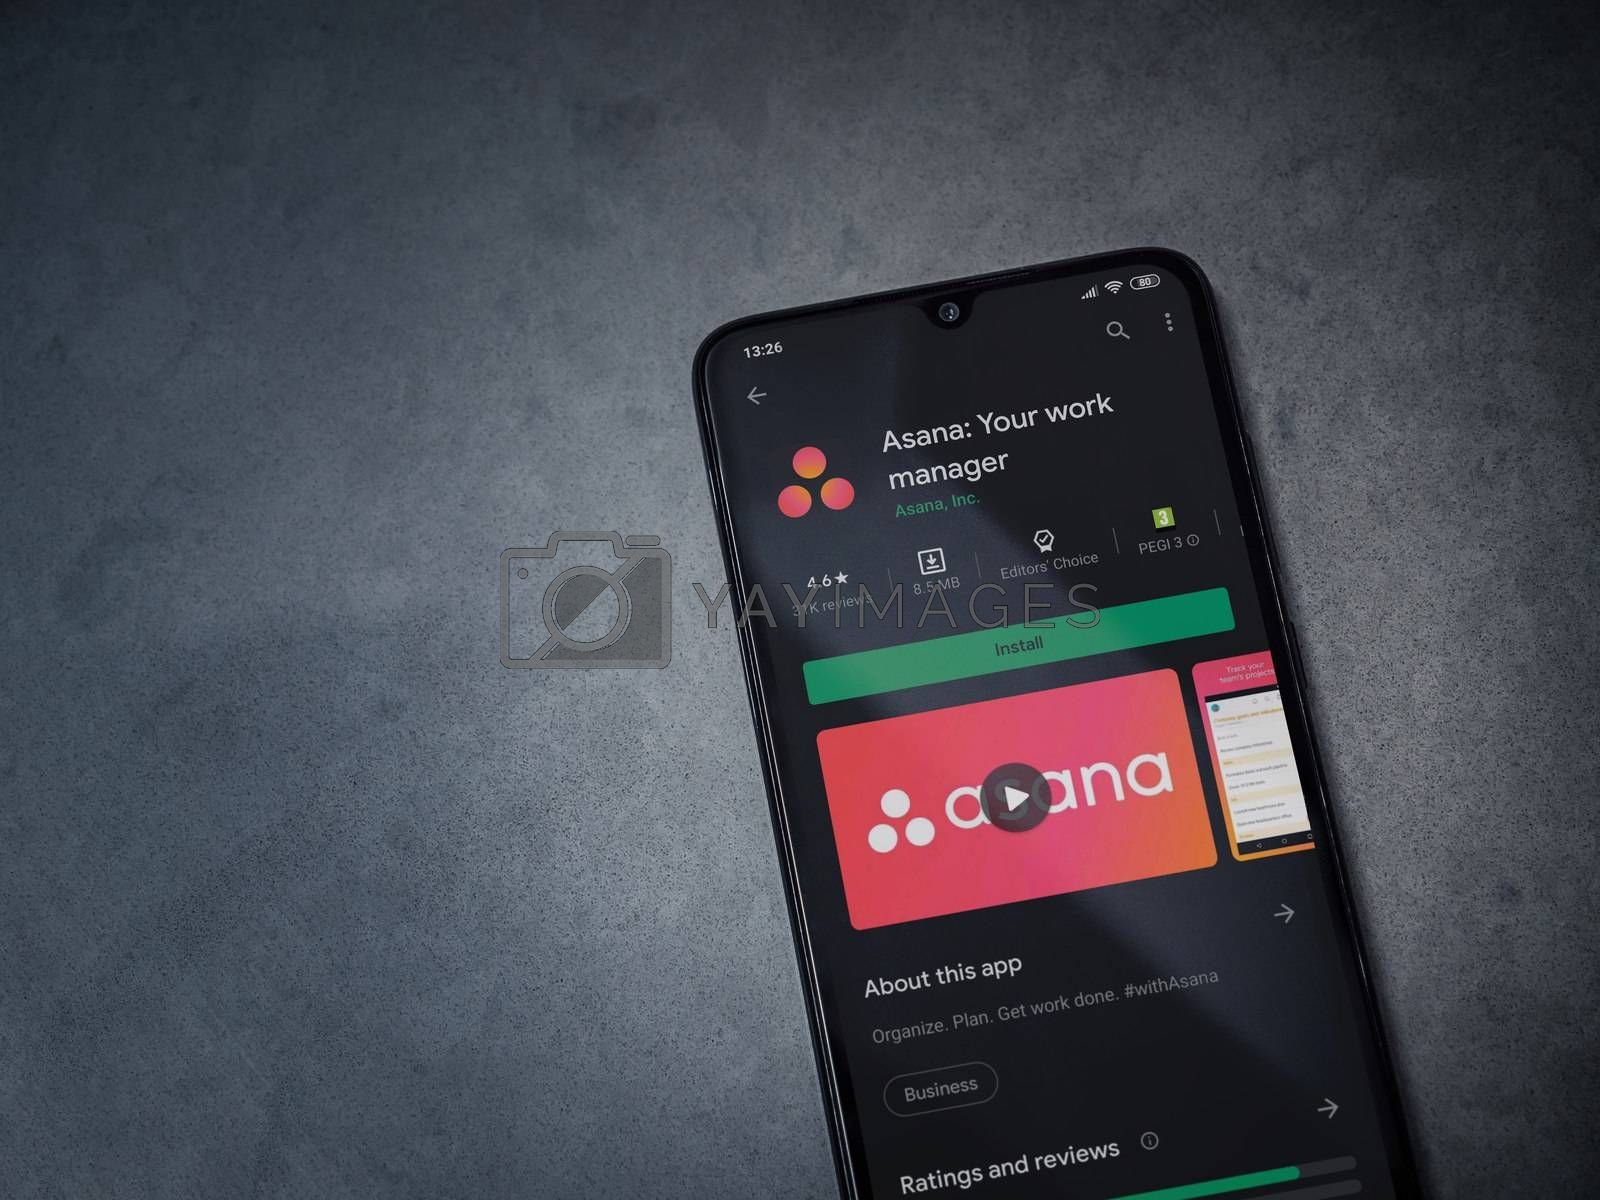 Lod, Israel - July 8, 2020: Asana app play store page on the display of a black mobile smartphone on dark marble stone background. Top view flat lay with copy space.